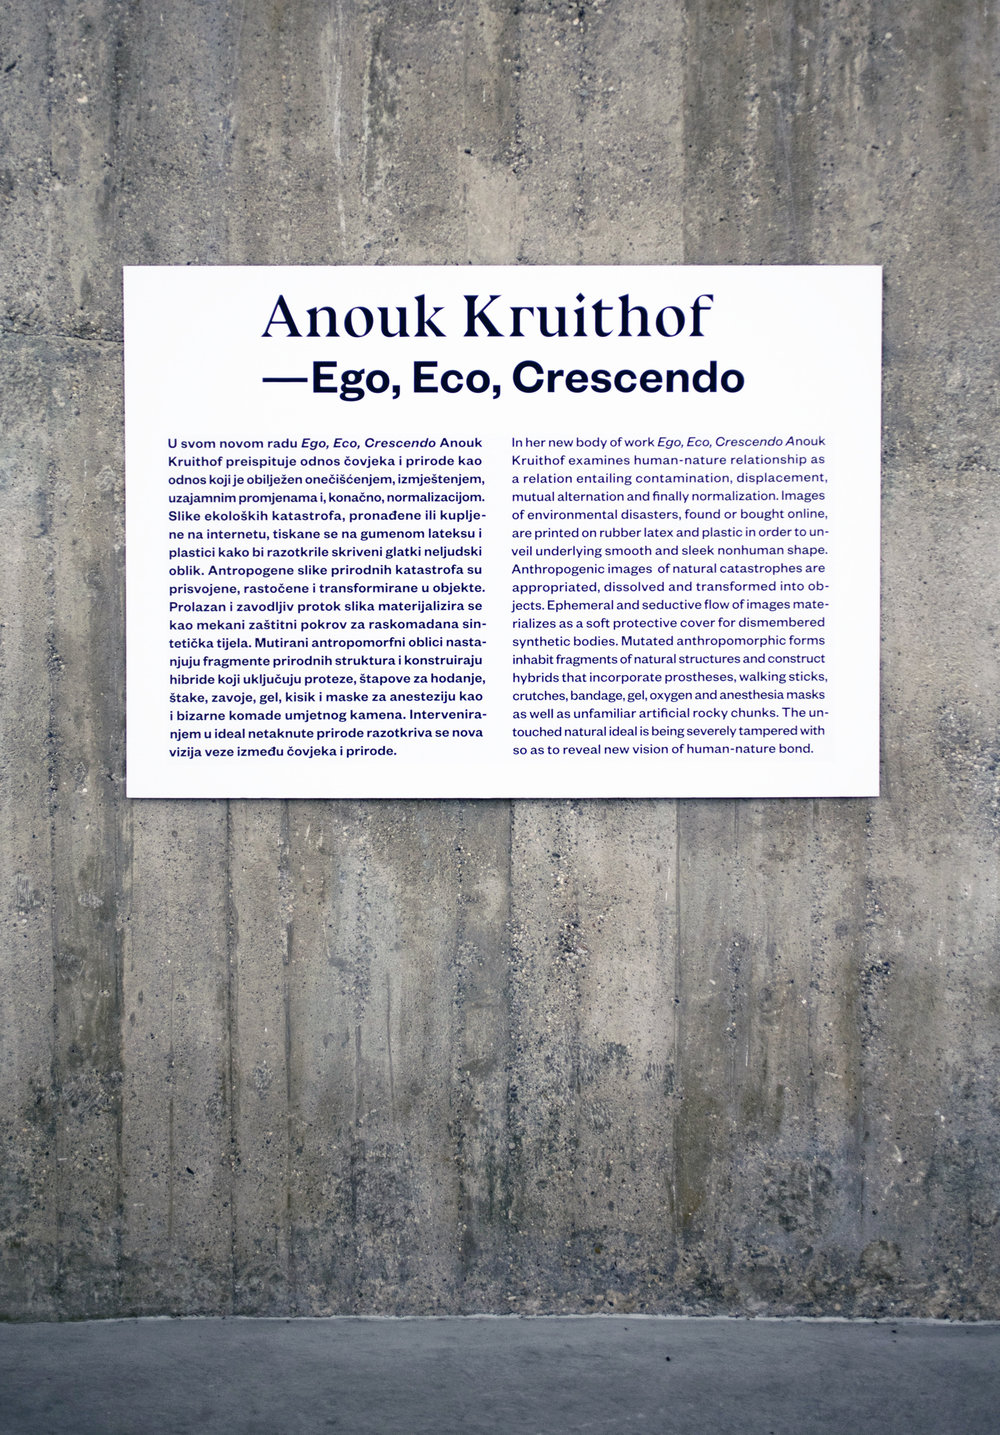 ego_eco_crescendo_selection_01.jpg